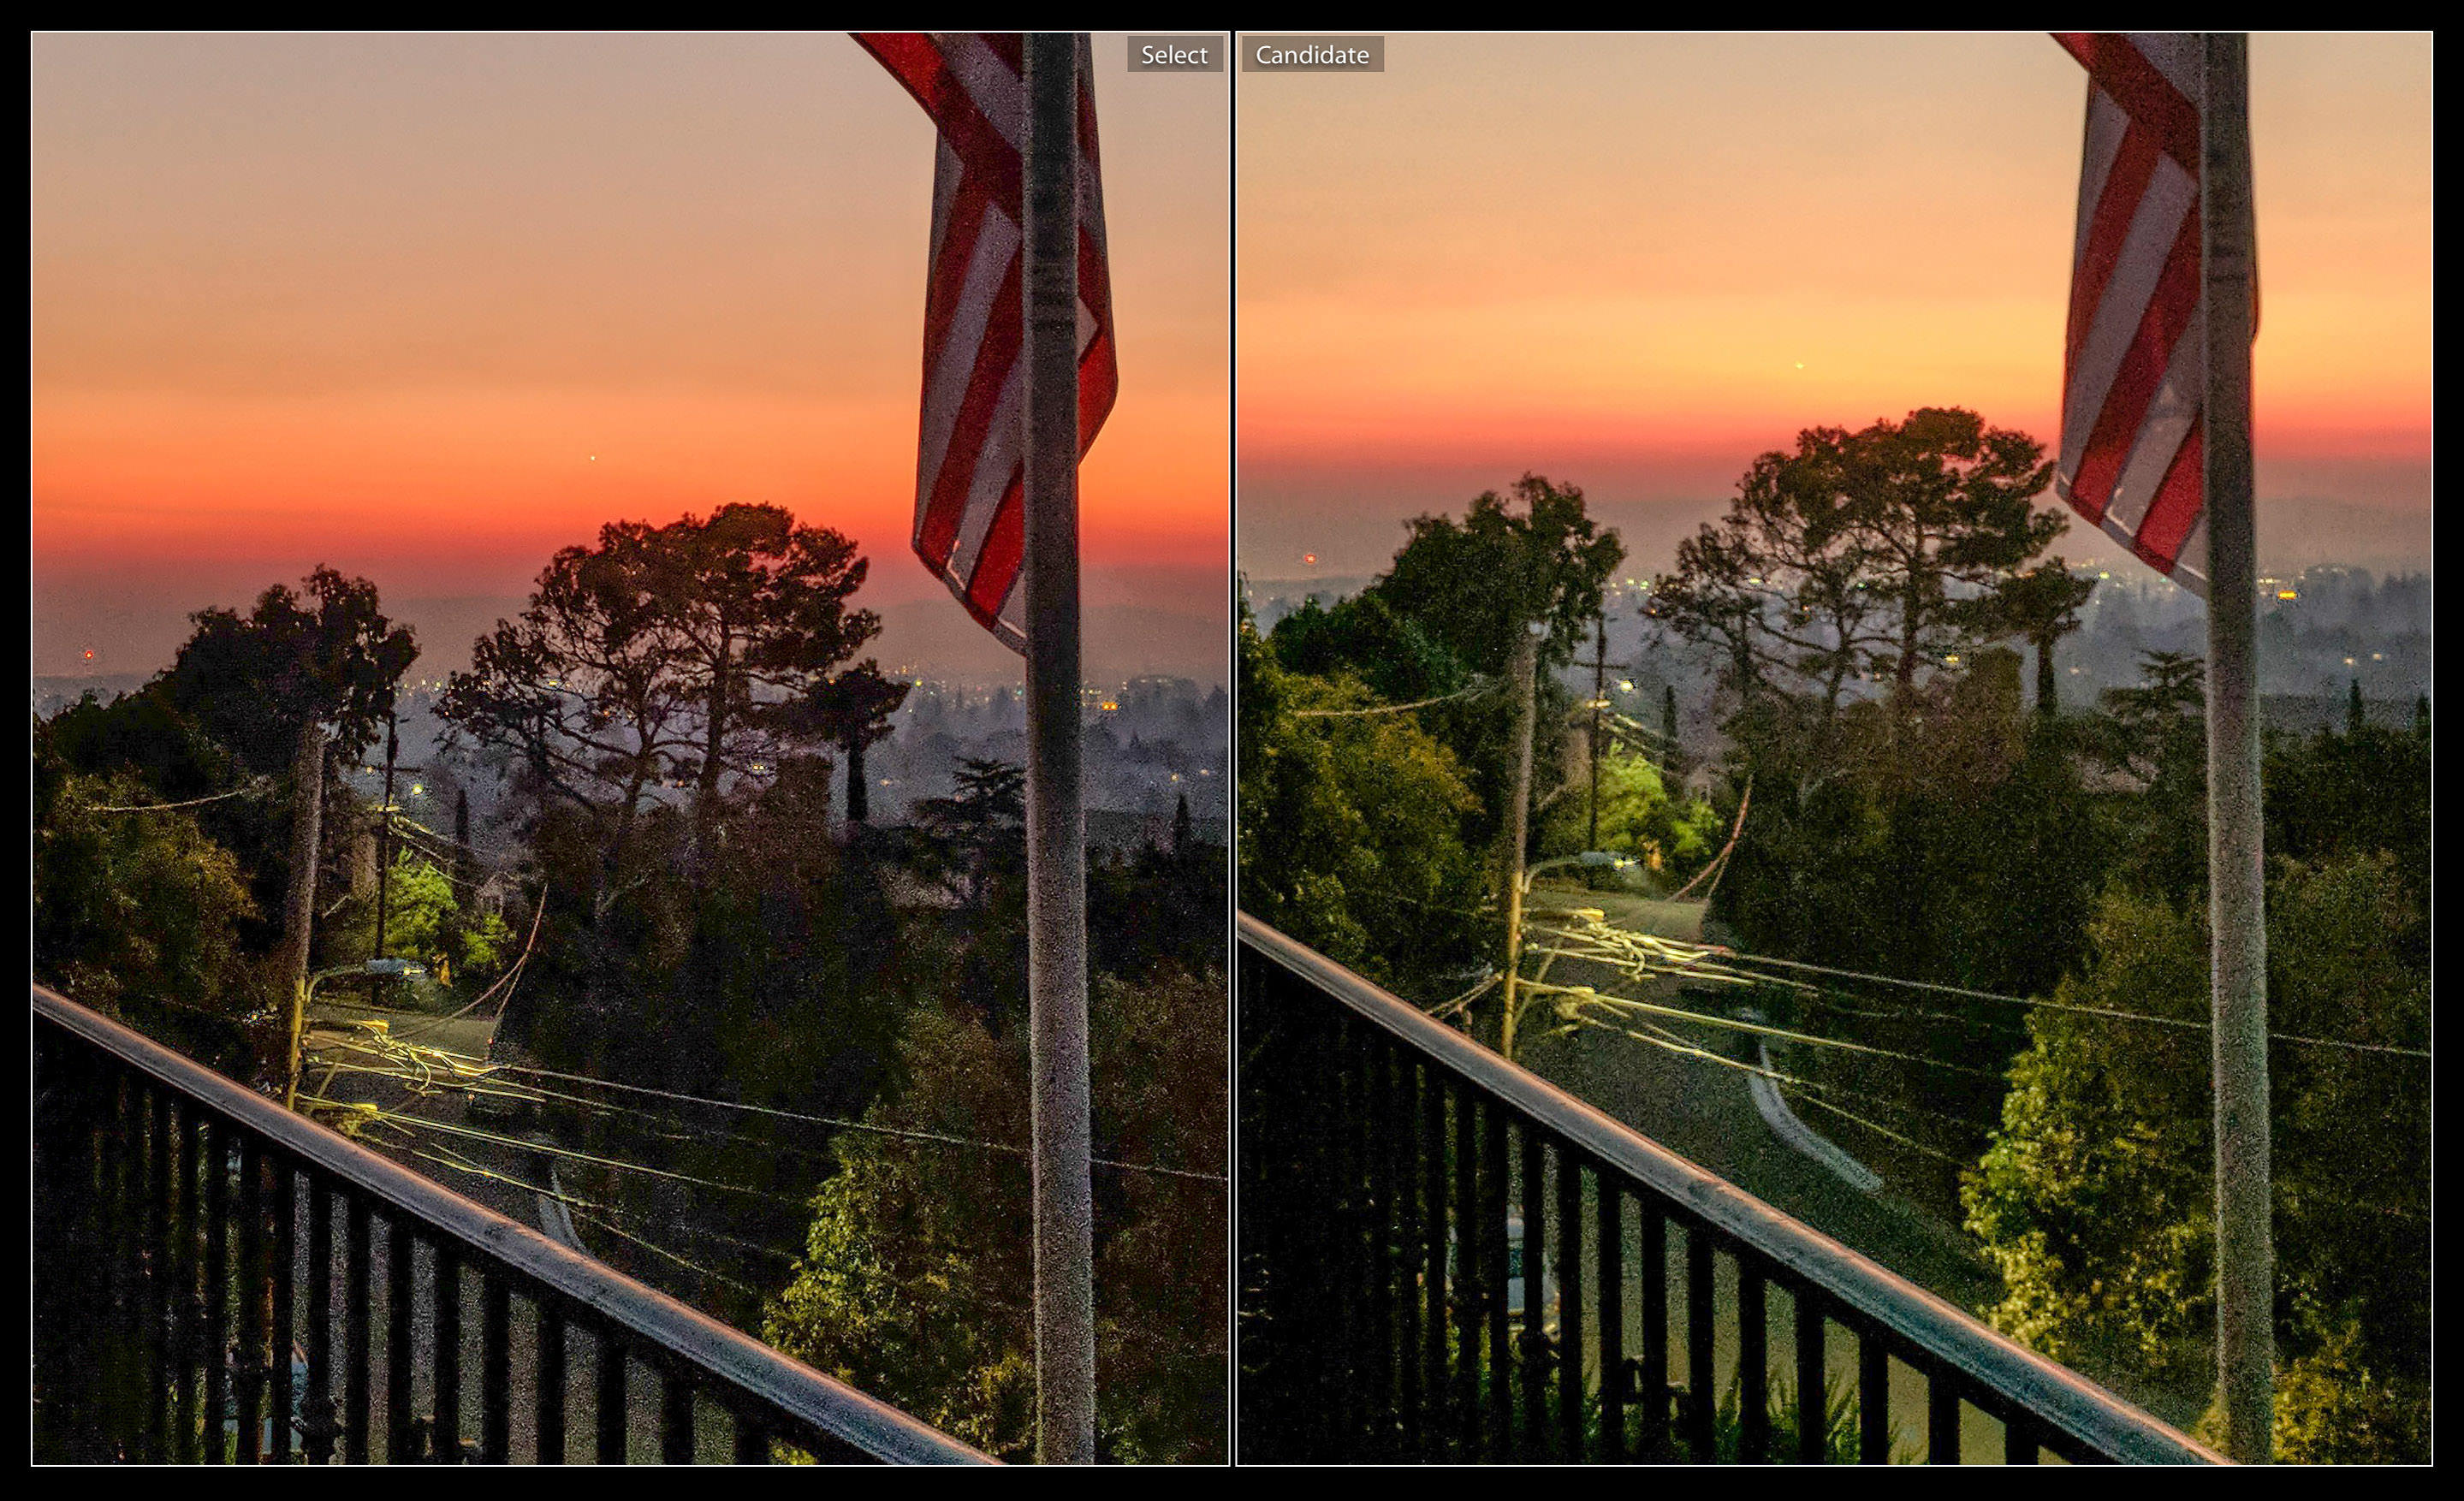 In challenging conditions like this dawn sky, the Pixel 2 photo at left is sharper, with better shadow details and a less washed-out sky compared to the shot from 2016's first-gen Pixel. This image is zoomed in, with shadows boosted to show details.